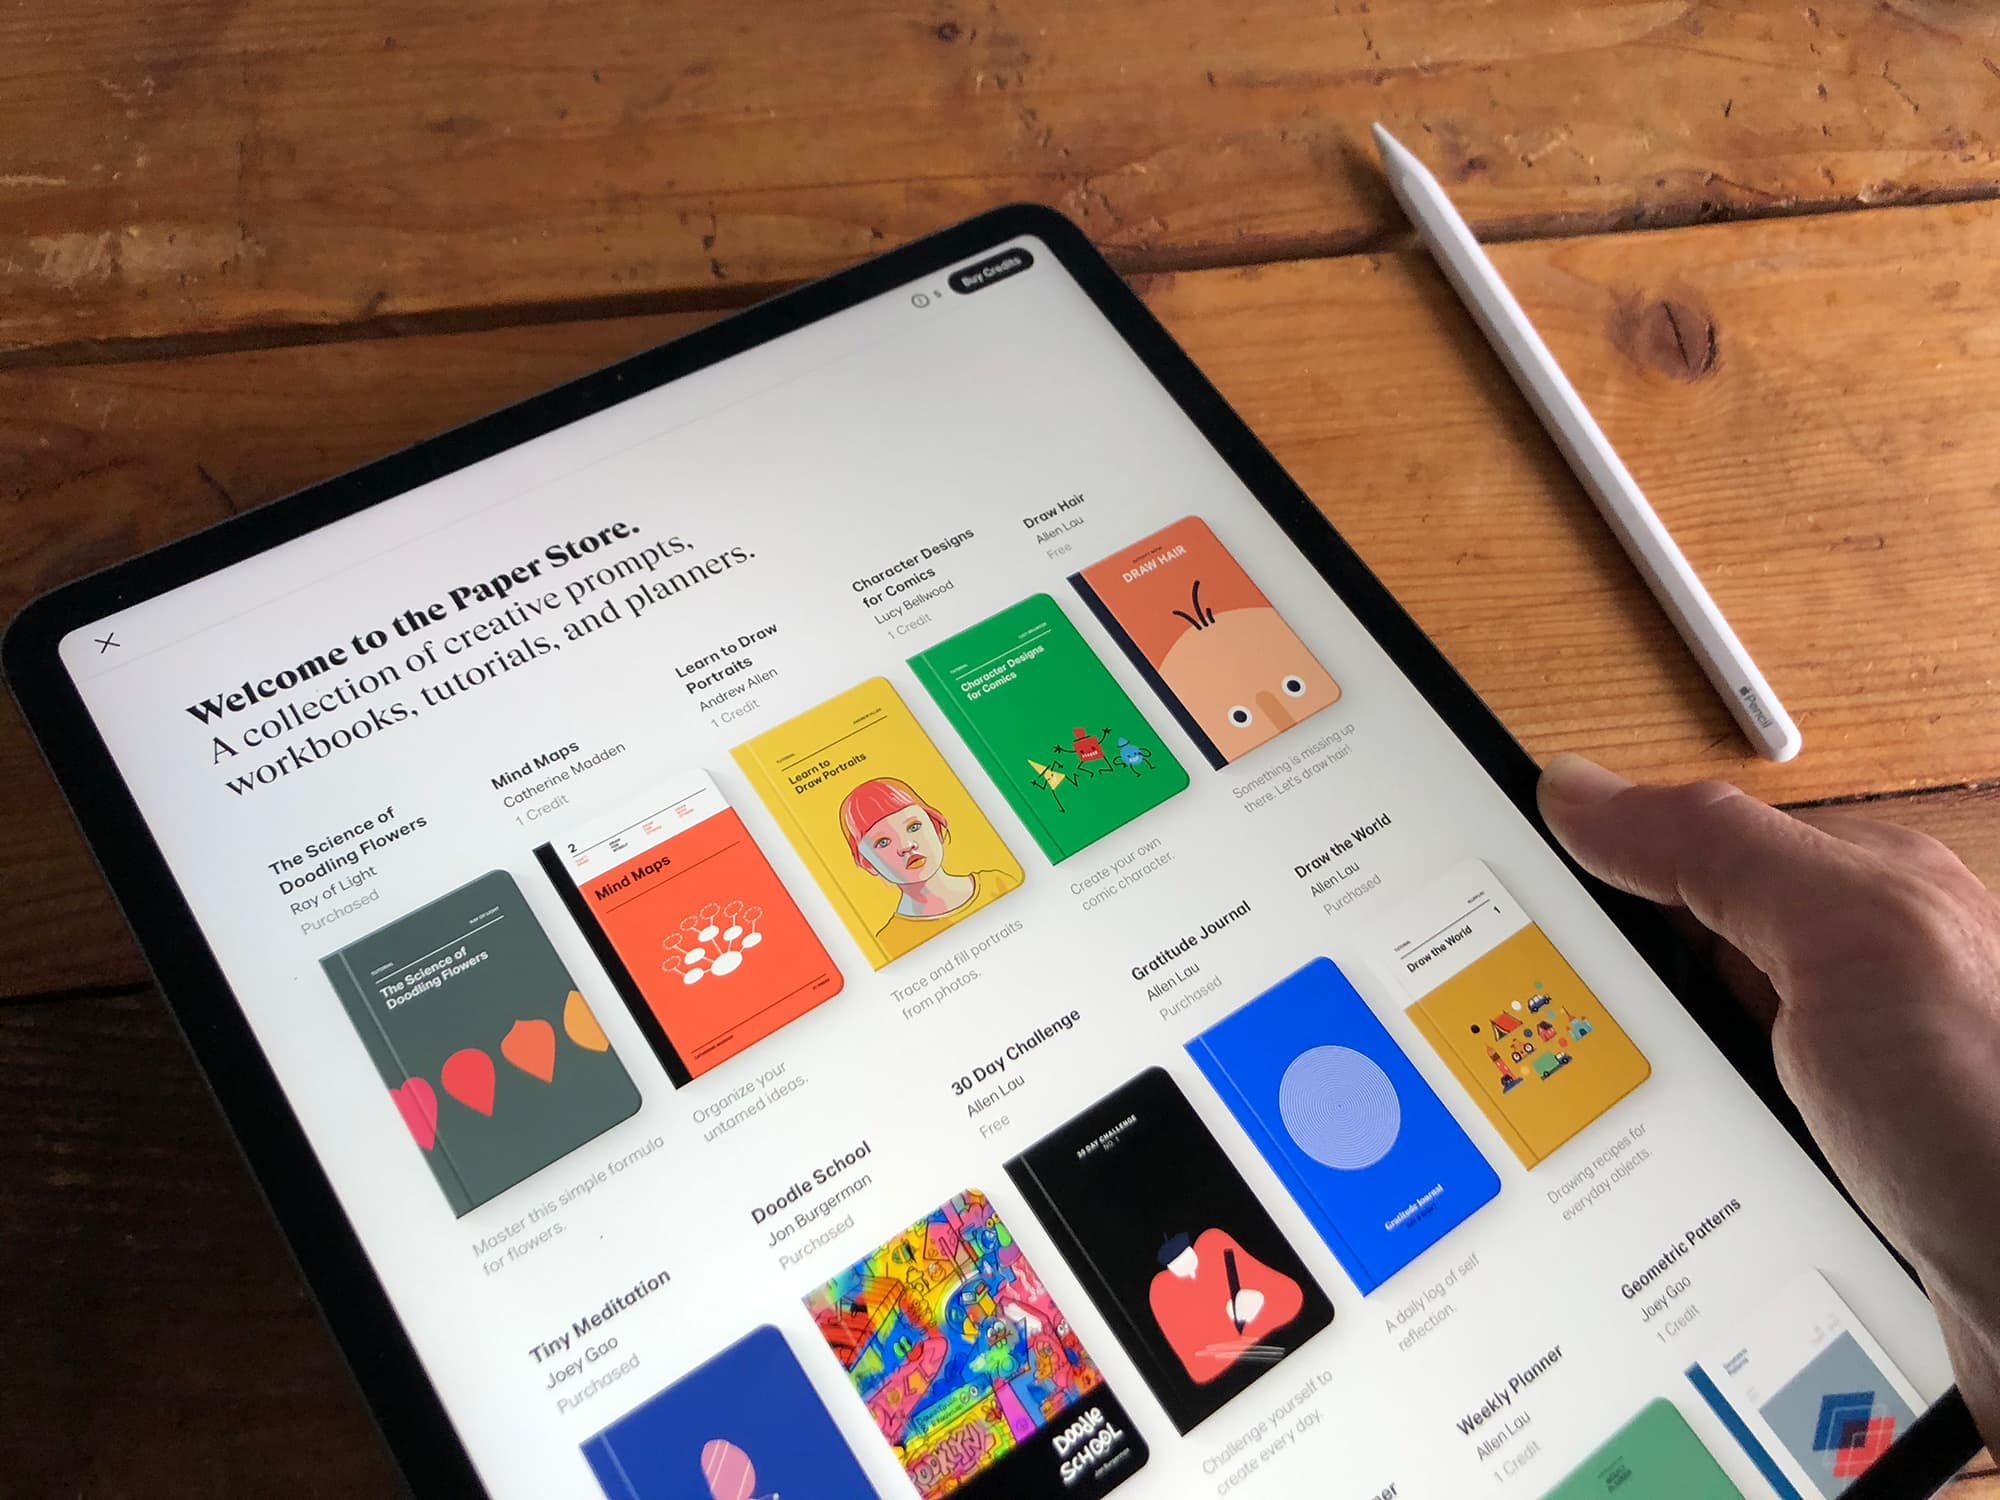 These exquisitely designed digital journals in Paper by WeTransfer will get anyone's creative juices flowing.